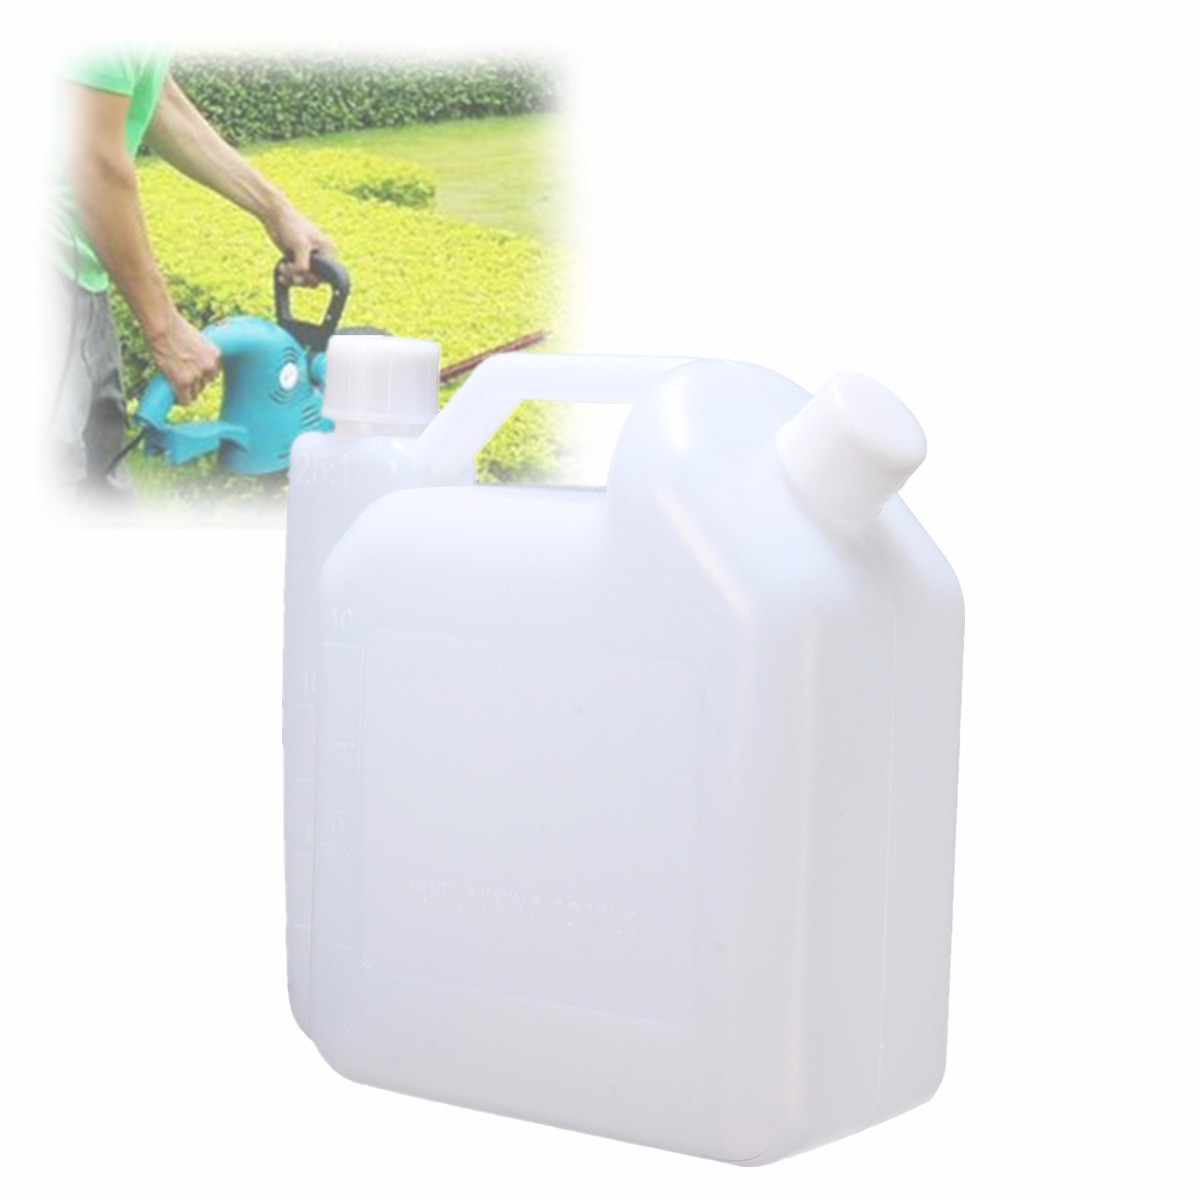 1 Litre 2 Stroke Oil Petrol Fuel Mixing Bottle Tank For Chainsaw Trimmers 1:25 Plastic Fuel Tanks White 15.5x7.3x16.3cm